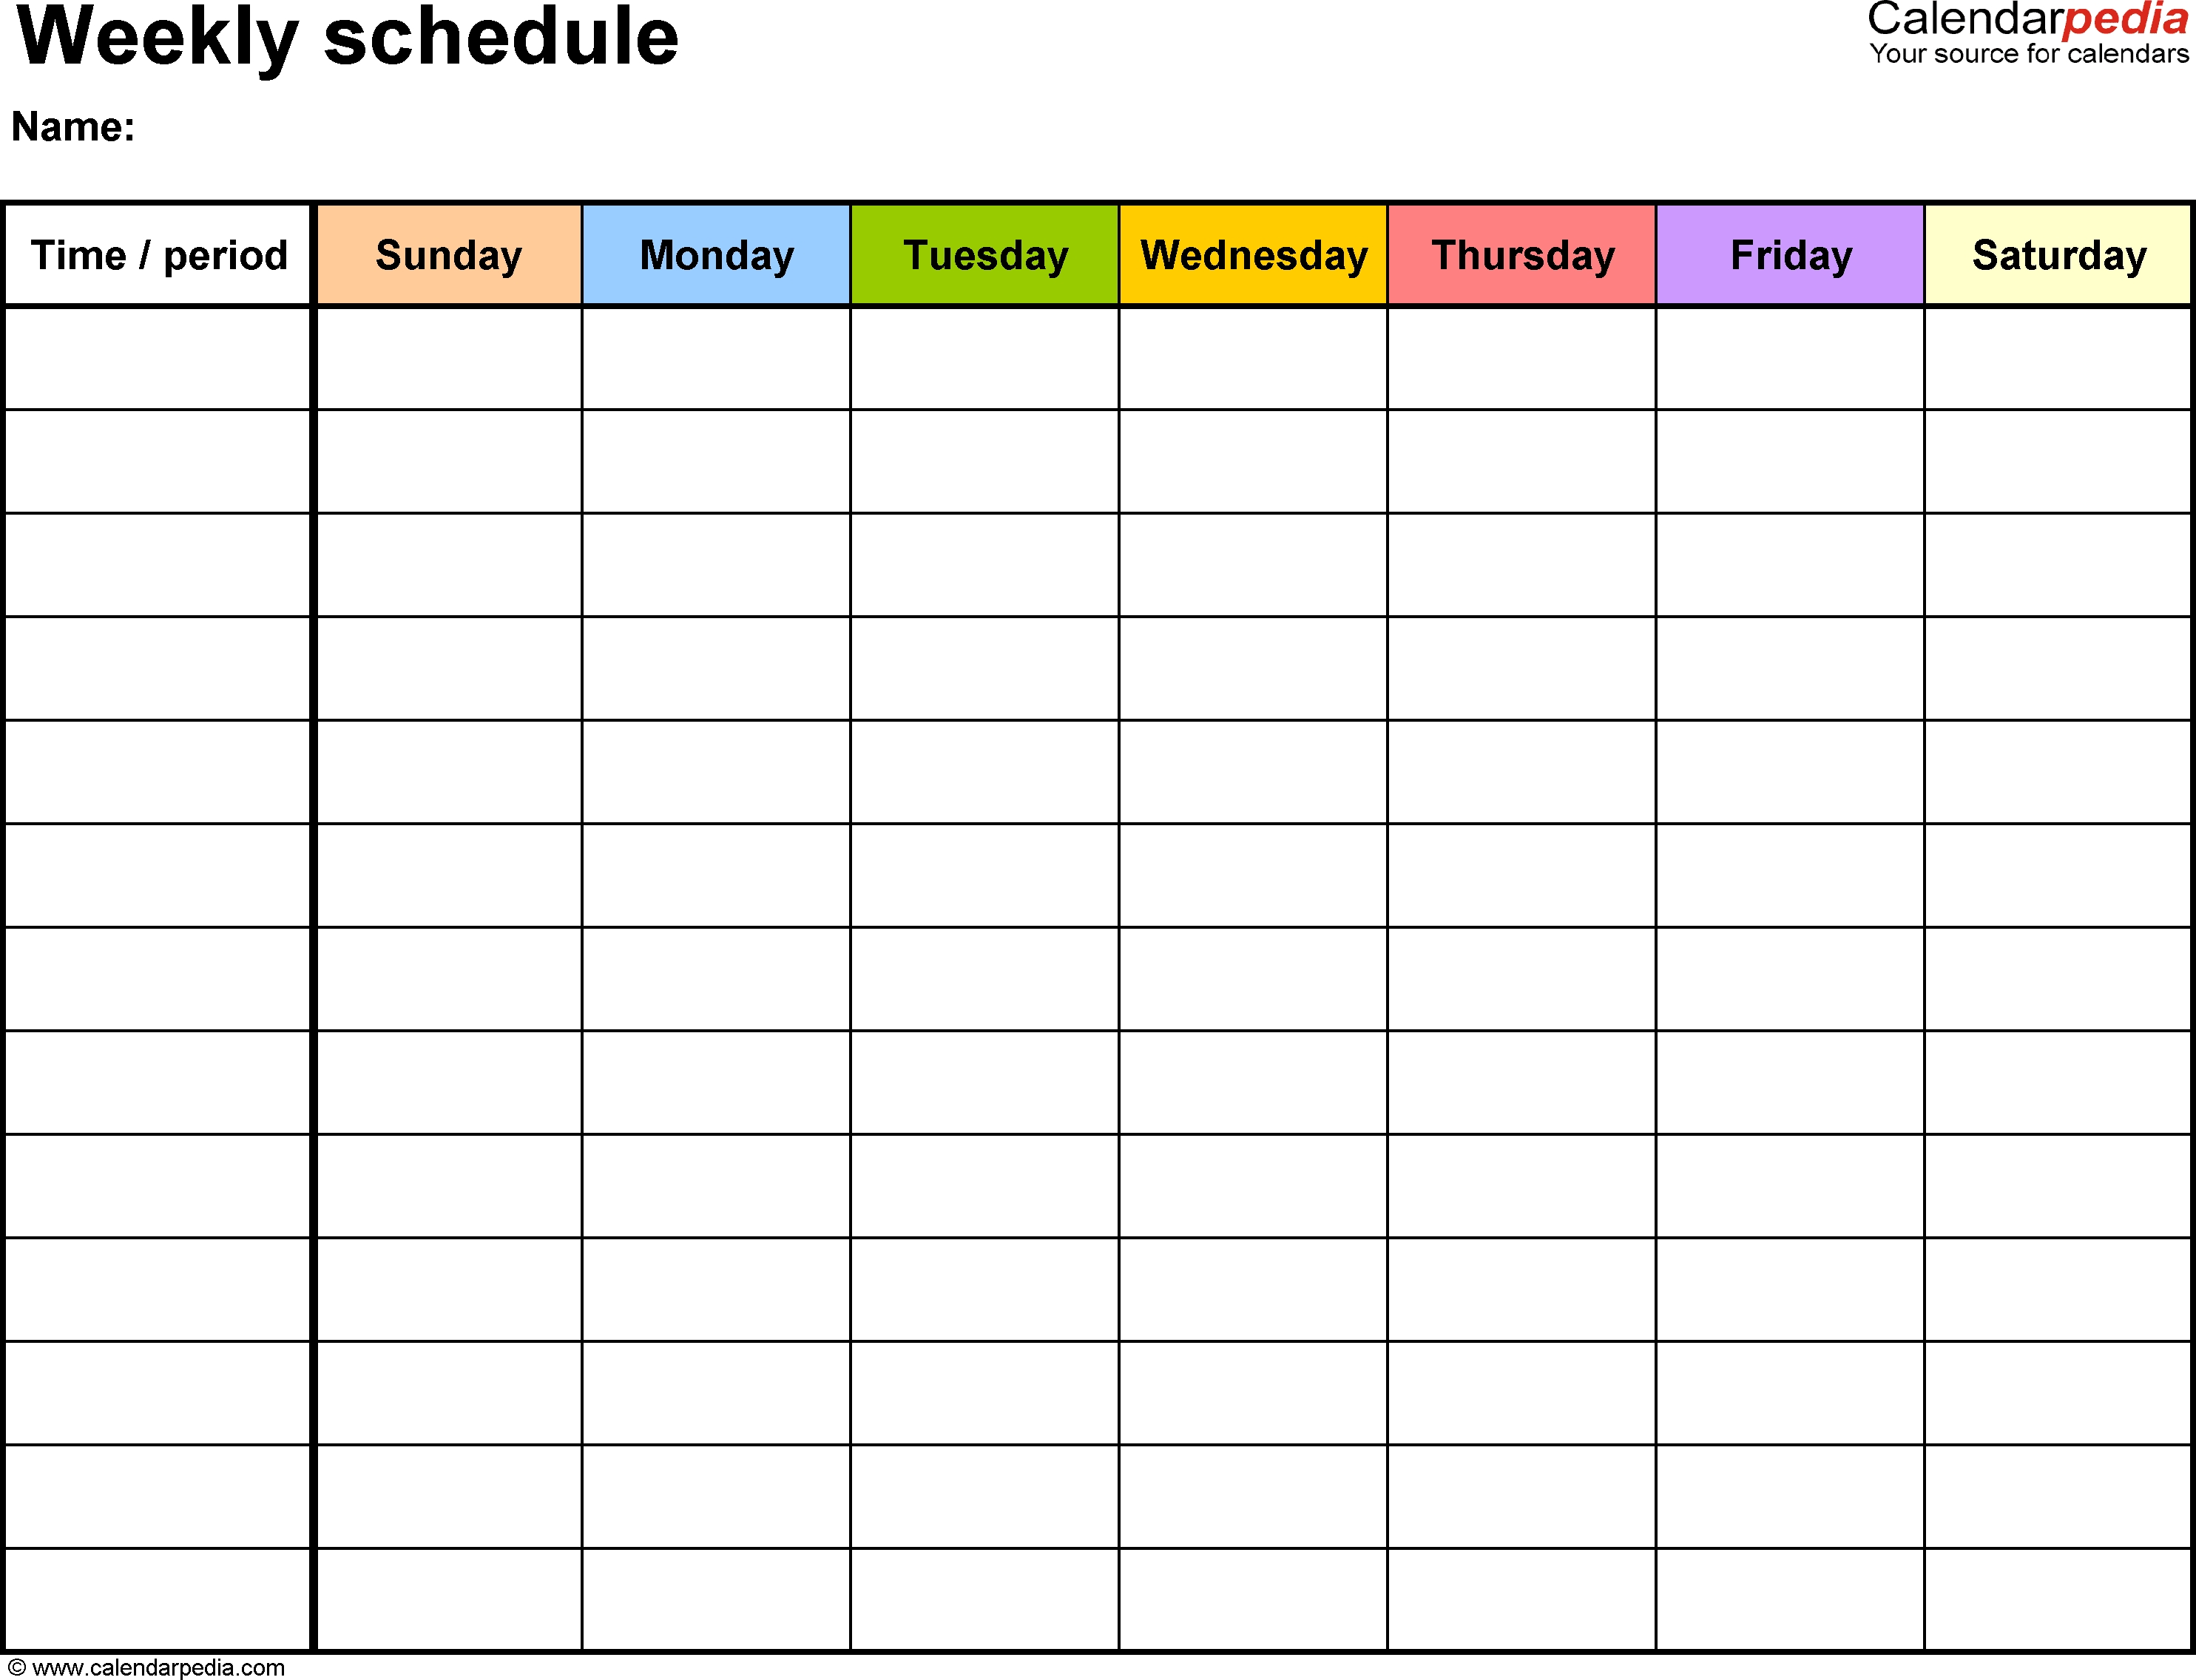 Free Weekly Schedule Templates For Pdf - 18 Templates inside 7 Day Week Schedule Calendar Pdf